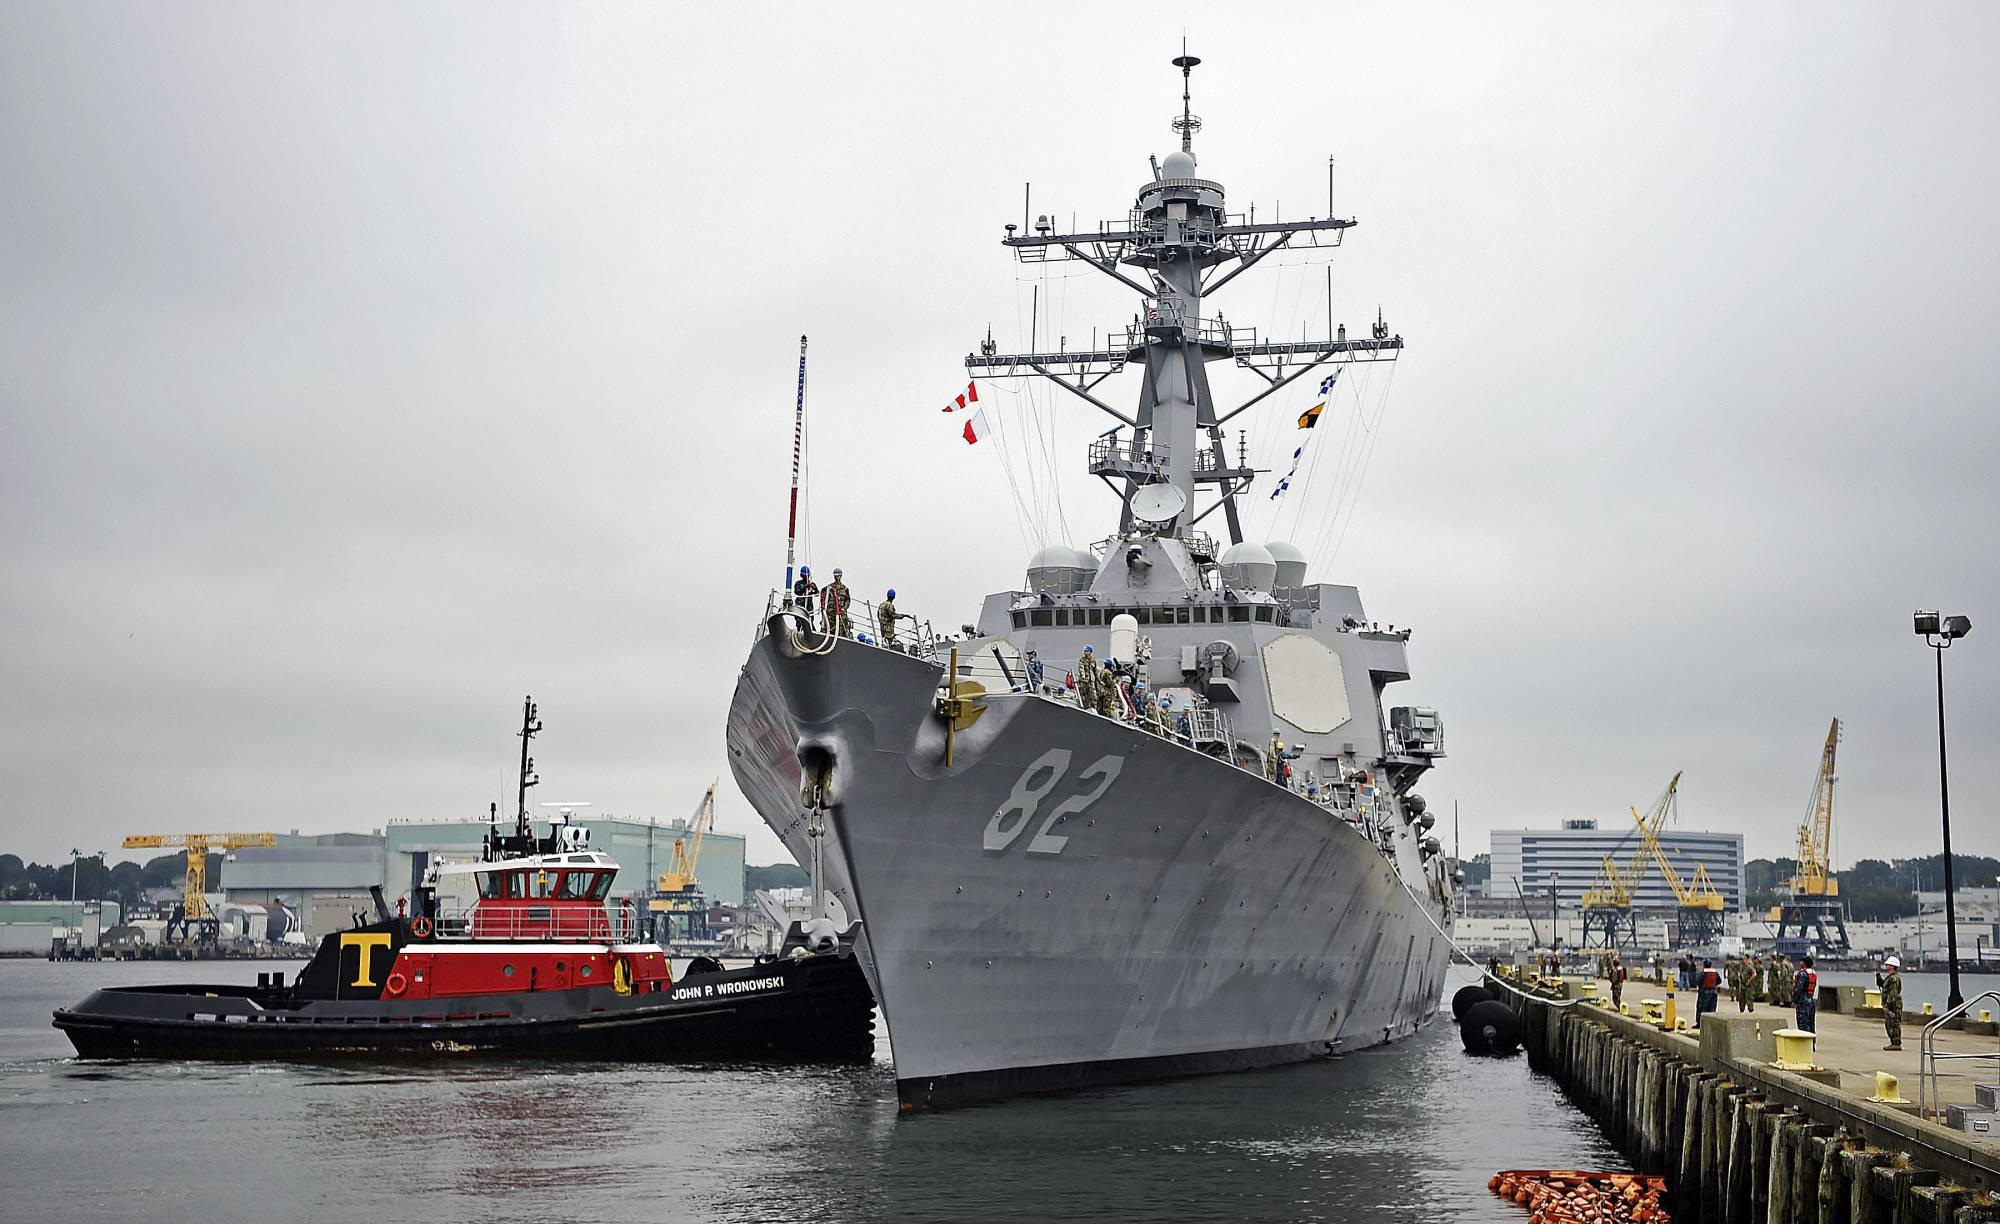 FILE - In this Sept. 6, 2019 file photo, the U.S. Navy Arleigh Burke-class guided missile destroyer USS Lassen (DDG-82) moors at Fort Trumbull State Park in New London, Conn.  The Navy is proposing construction cutbacks and accelerated ship retirements that would delay, or sink, the Navy's goal of a larger fleet — and potentially hurt shipyards, according to an initial proposal.    The proposal would shrink the size of the fleet from today's level of 293 ships to 287 ships, a far cry from the official goal of 355 ships established in the 2018 National Defense Authorization Act.  (Sean D. Elliot/The Day via AP, File)